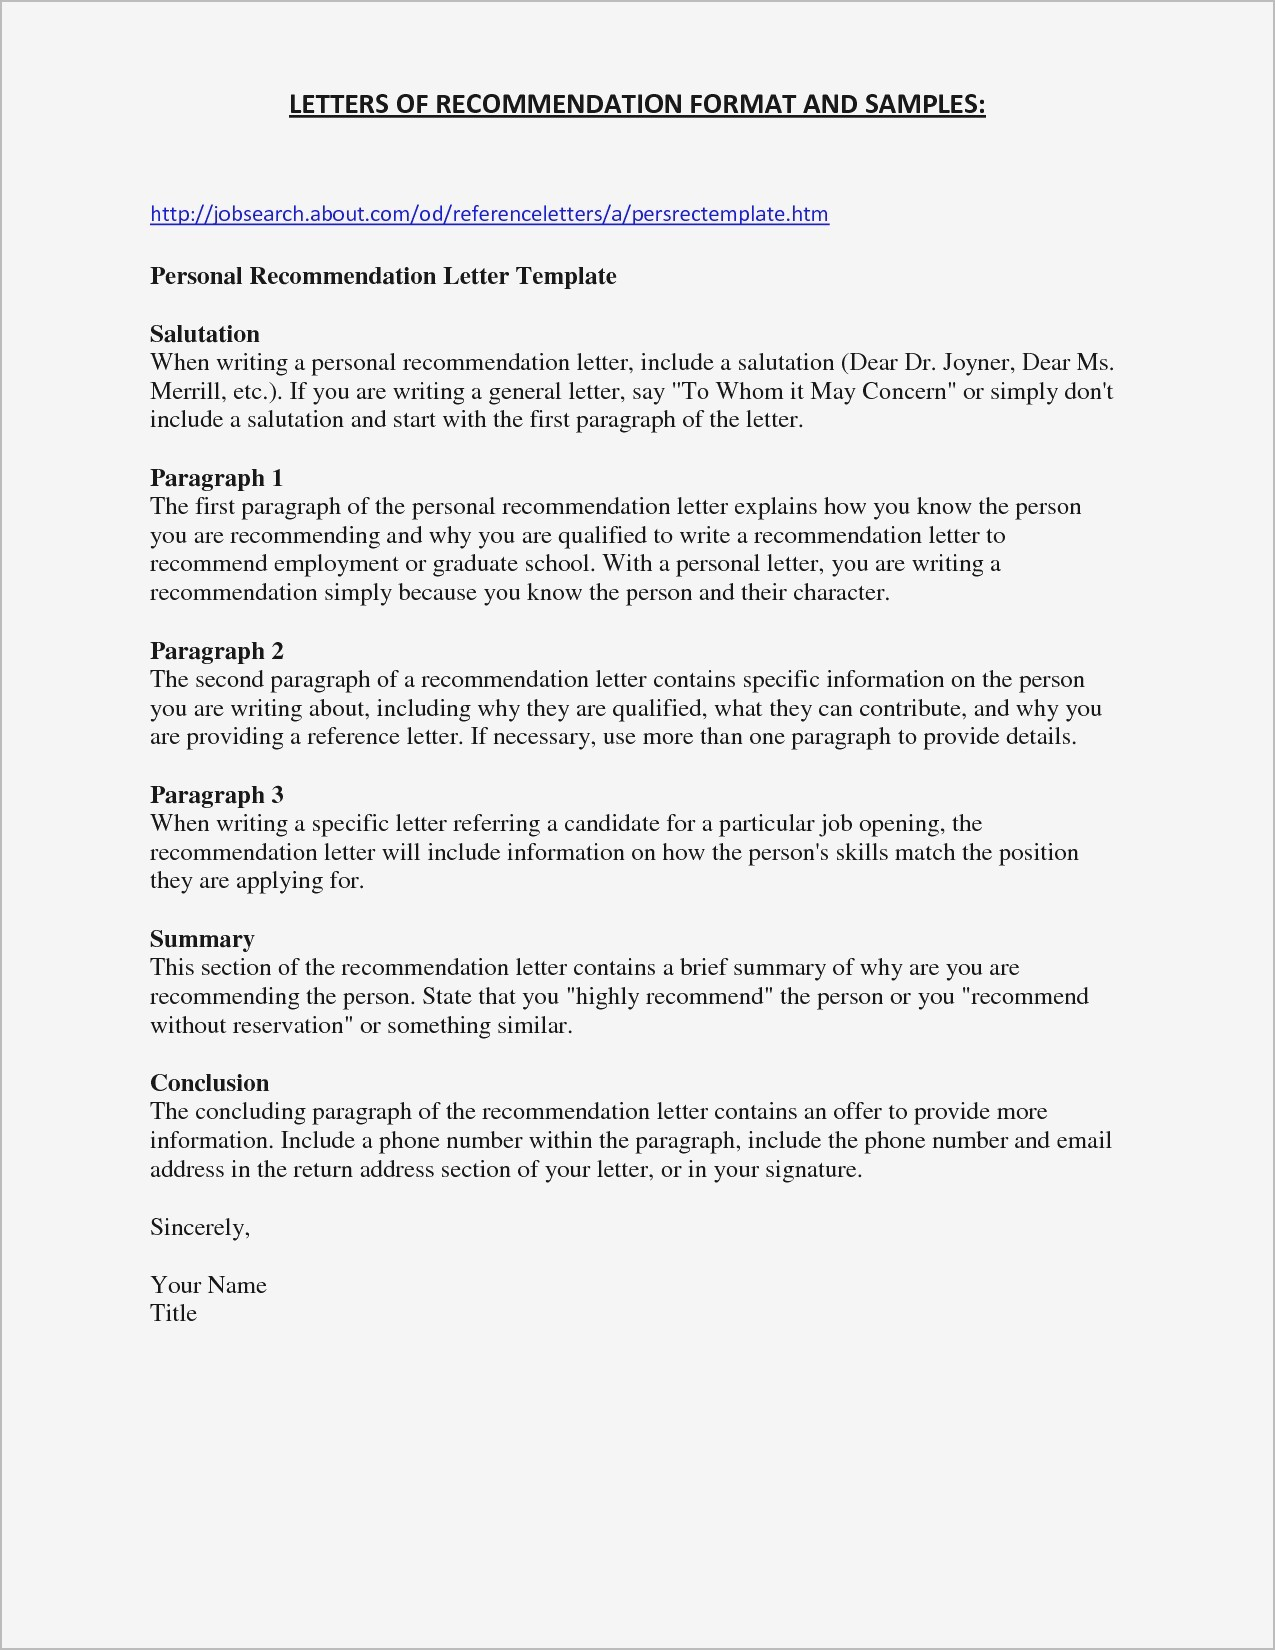 Reference Letter format Template - Personal Reference Letter for Job Valid Sample Personal Reference